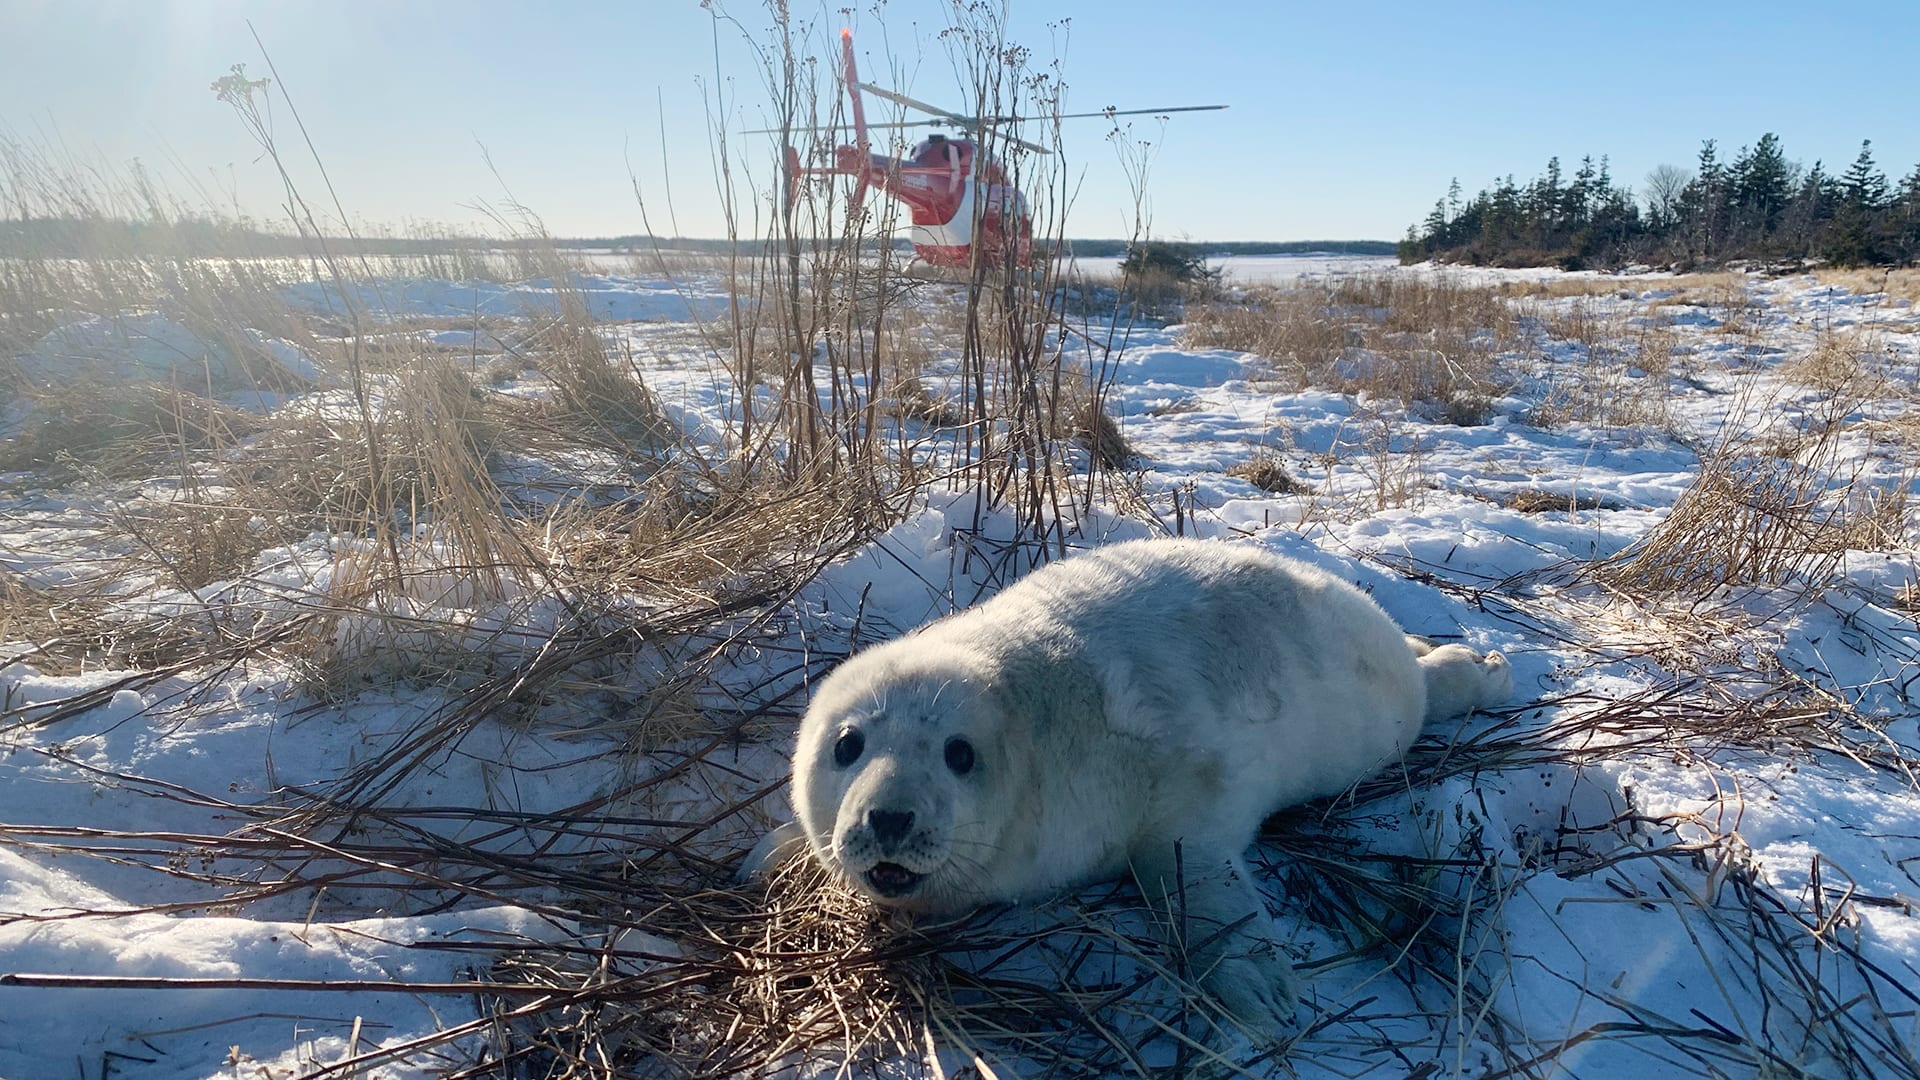 Marine ecologist at Woods Hole Oceanographic Institution is exploring new, non-invasive approaches to measuring the body mass of gray seals. Photo by Michelle Shero